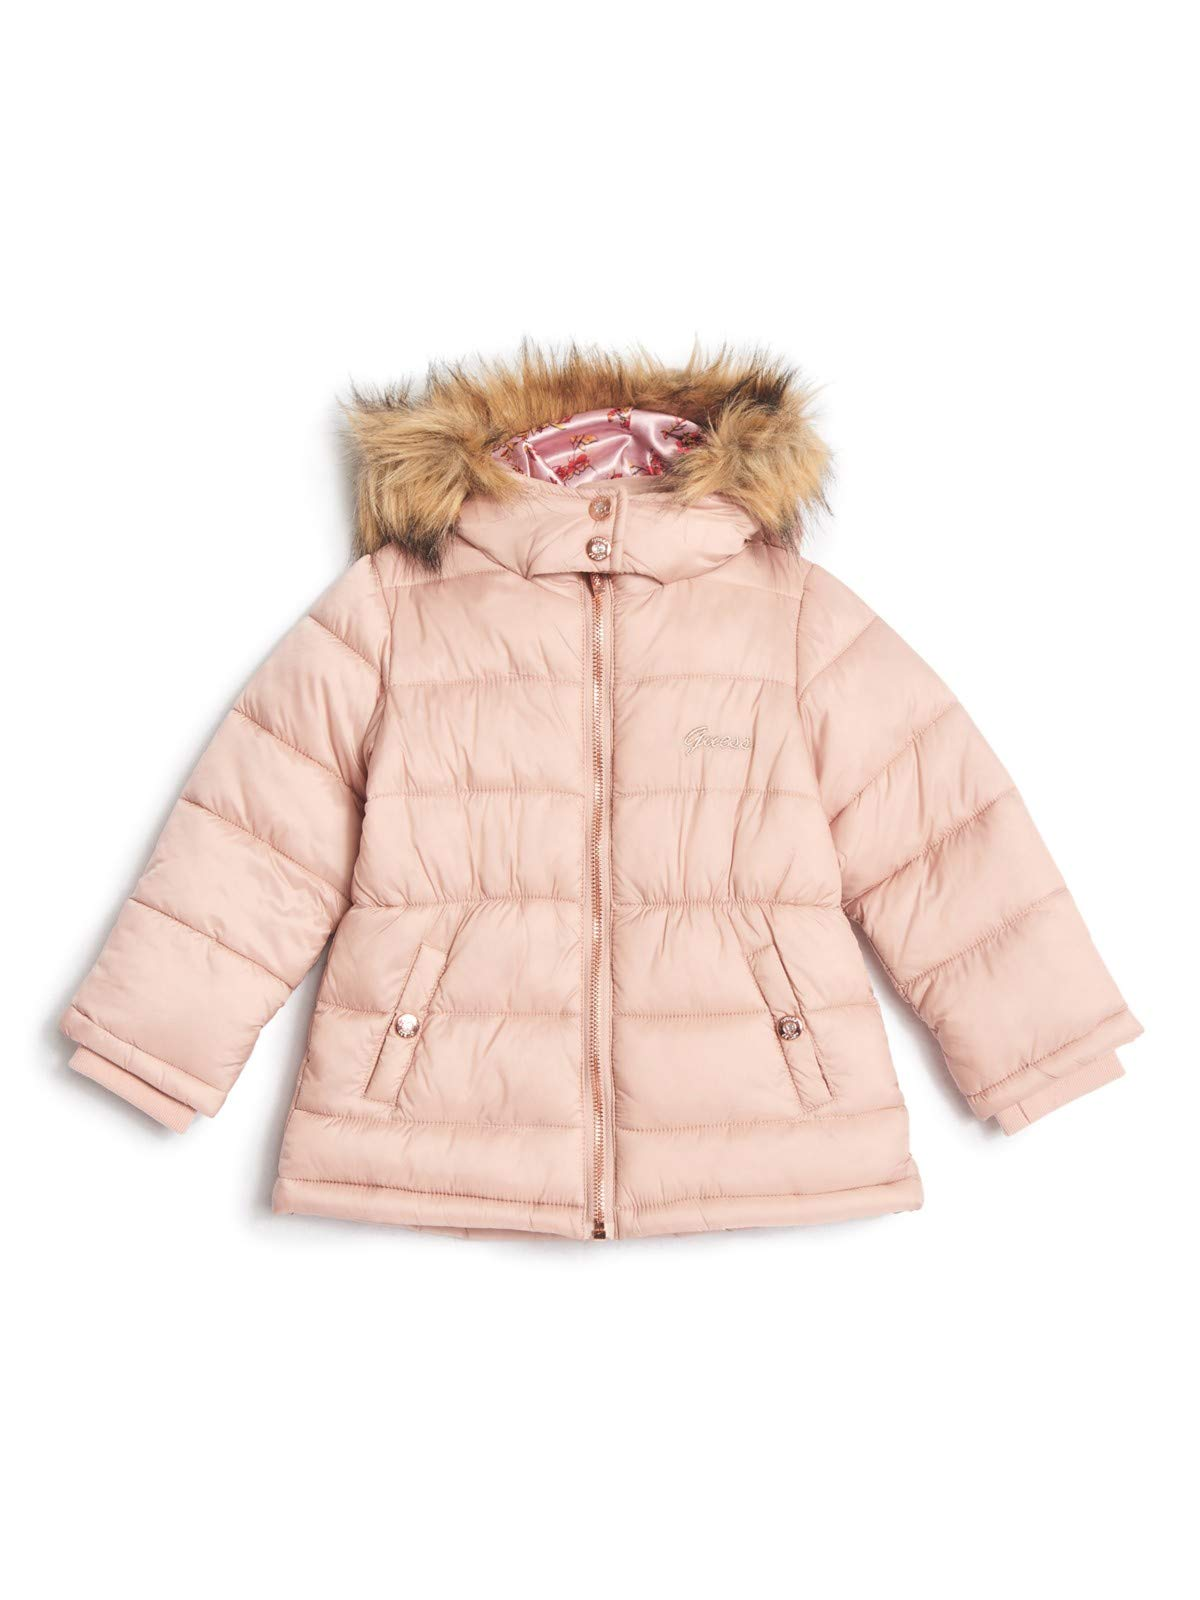 GUESS Factory Kylah Puffer Jacket (2-6) by GUESS Factory